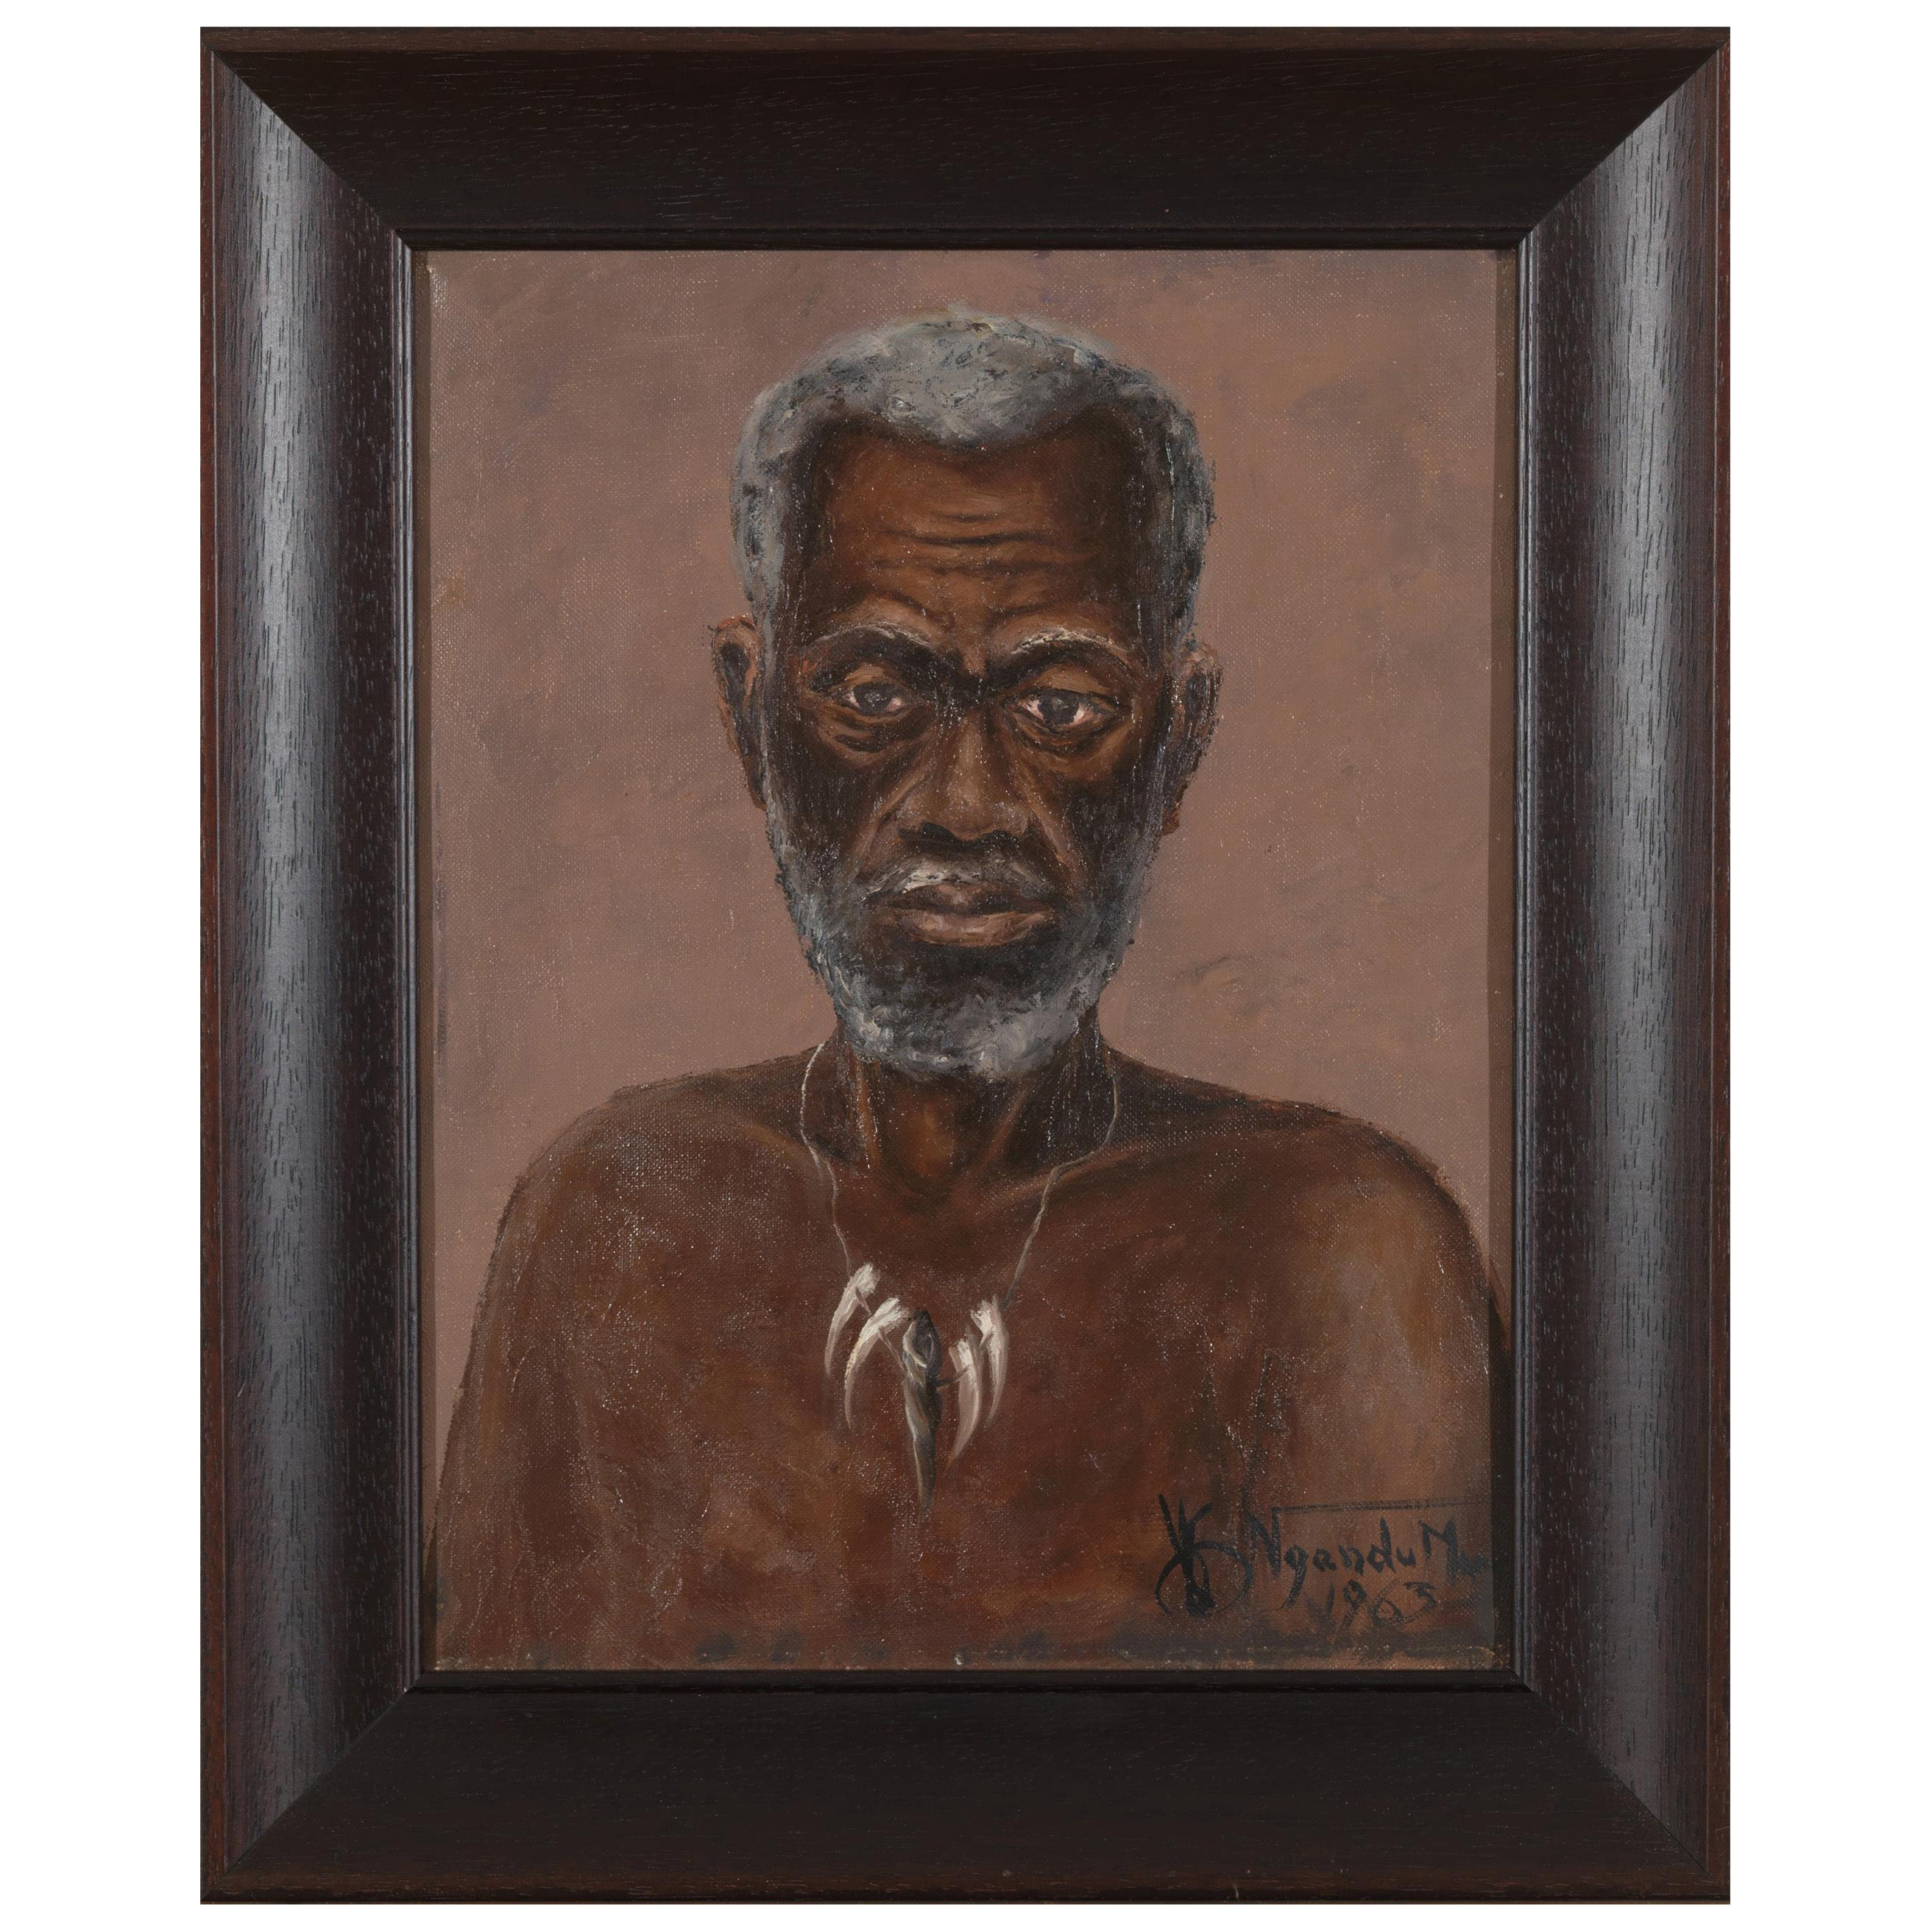 Ngandu Marc African Portrait, Oil on Canvas, Framed, Signed and Dated